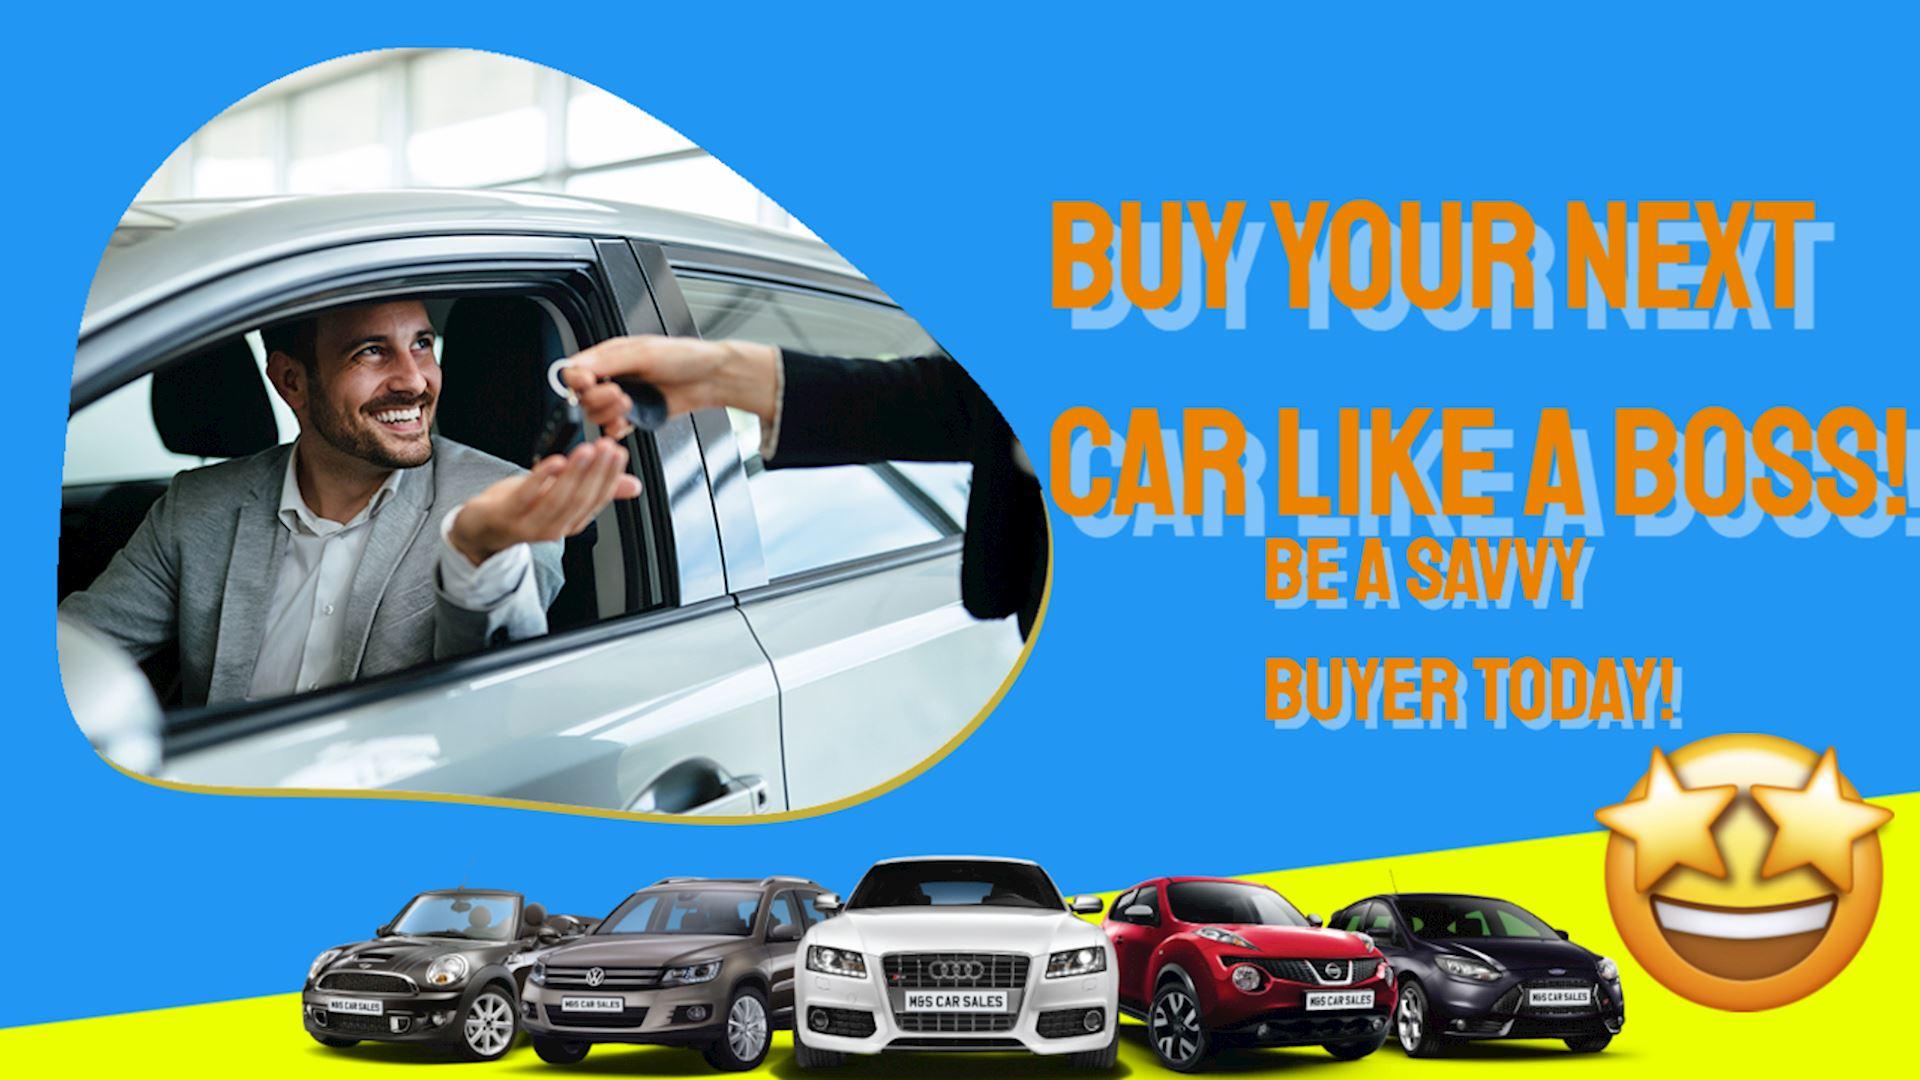 Buy Your Next Car Like a Boss!